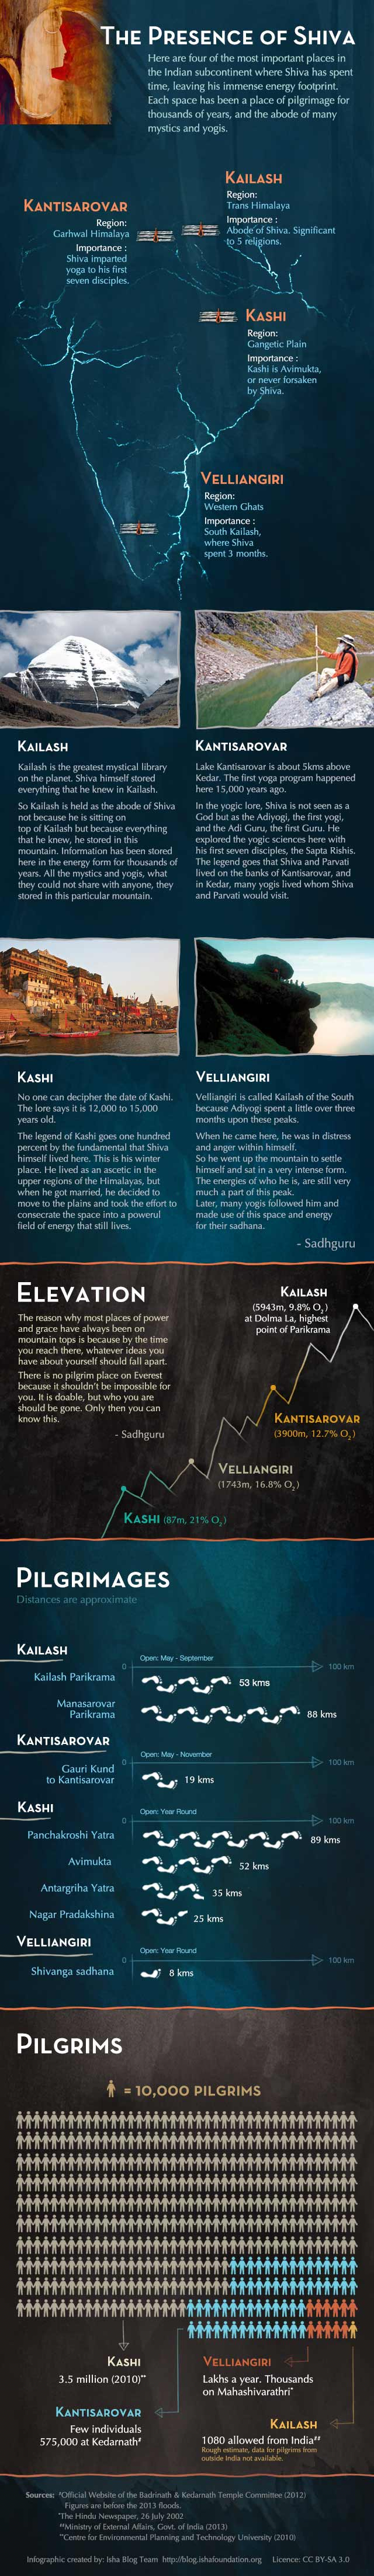 Infographic - The Presence of Shiva